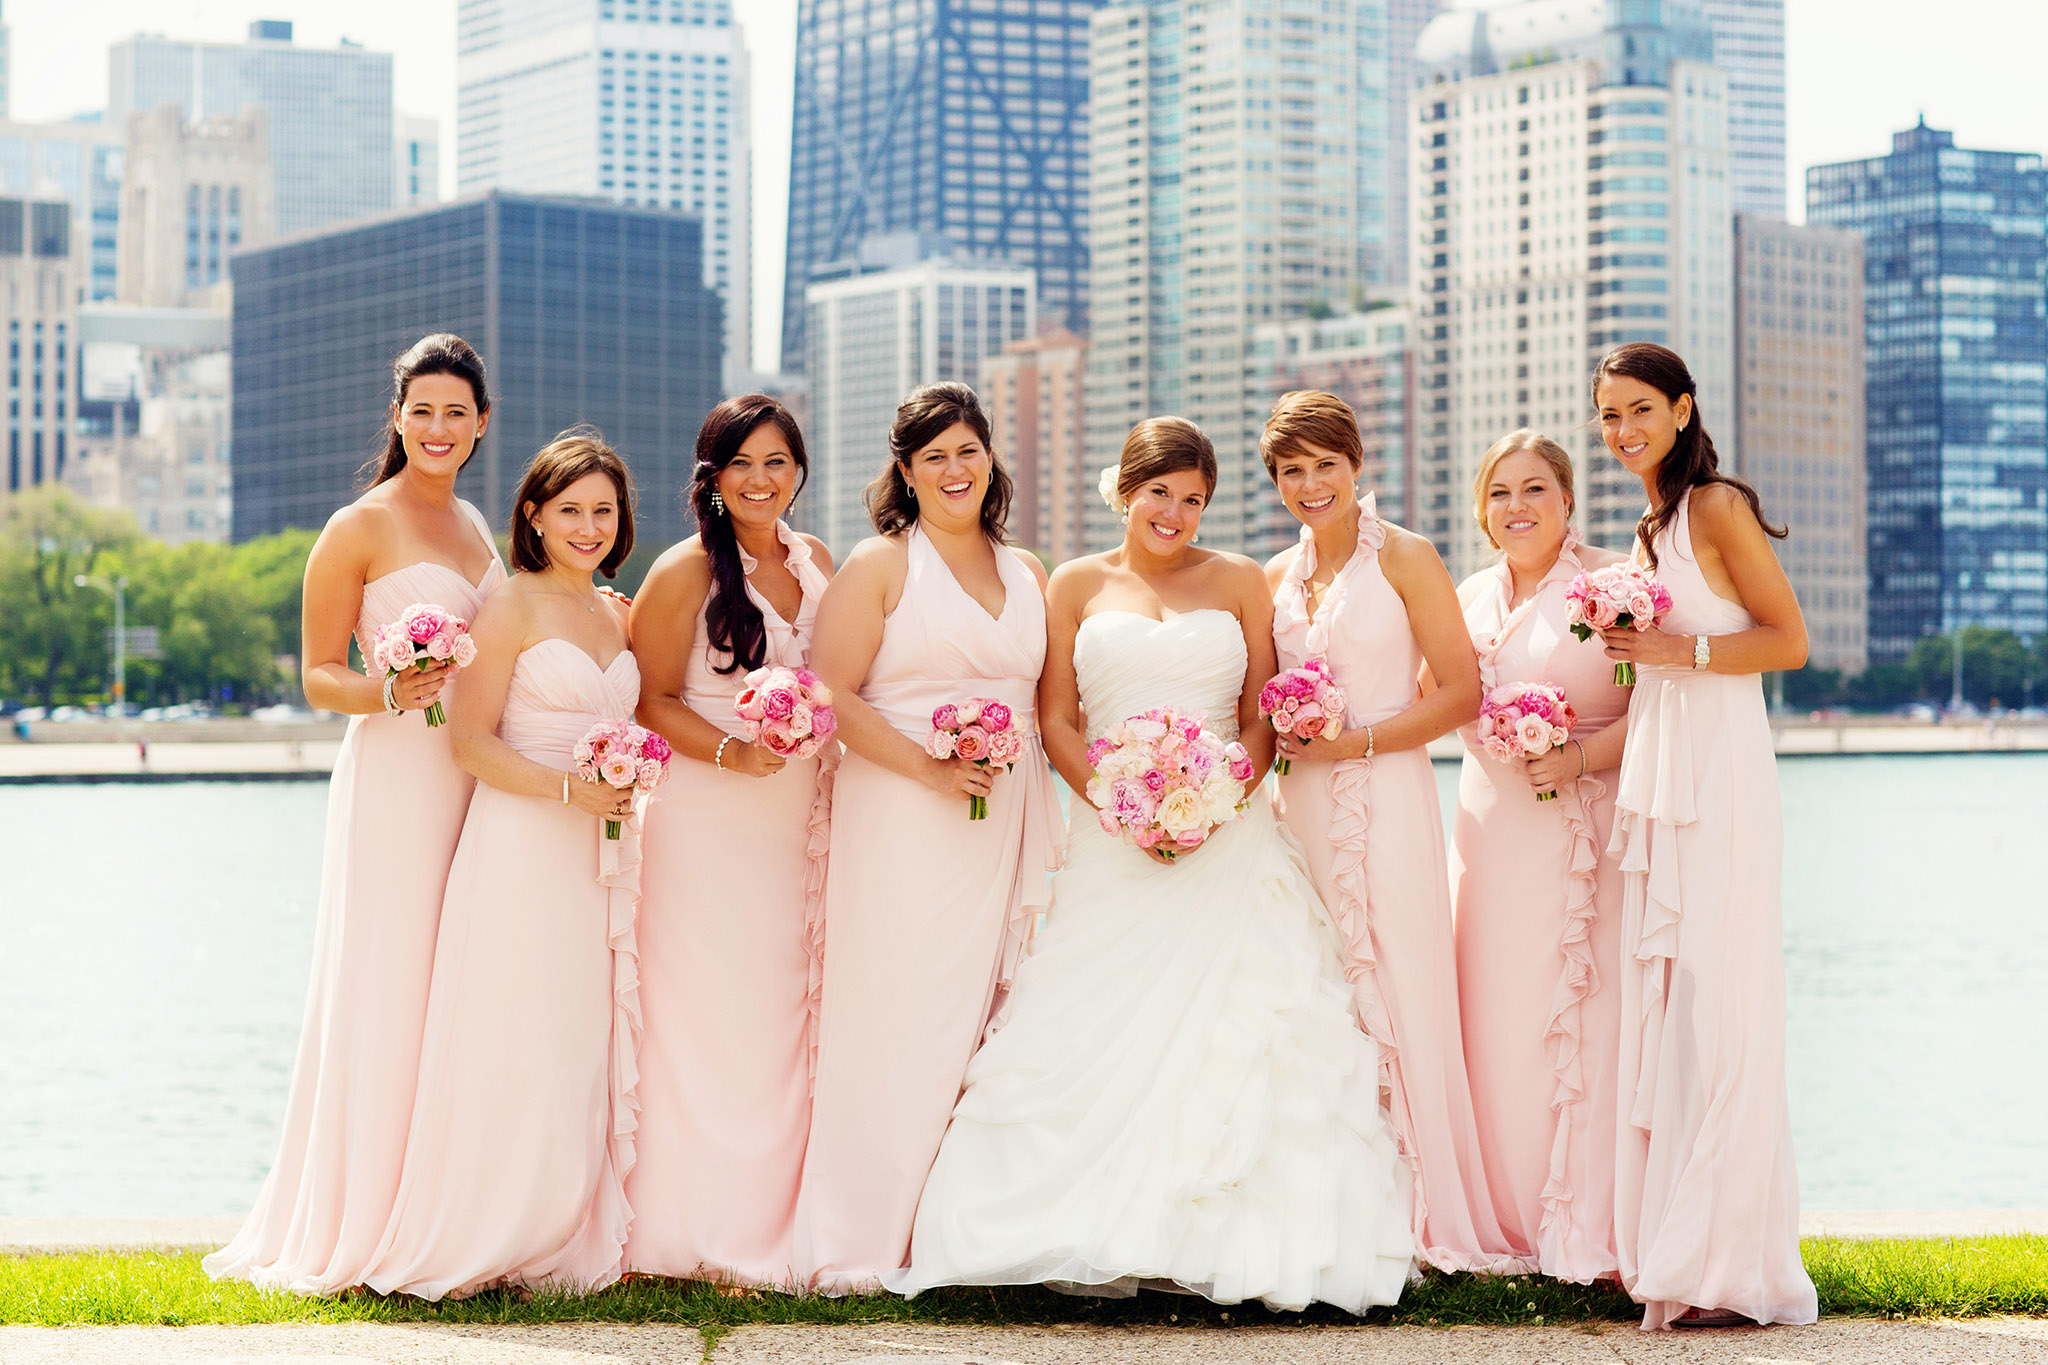 779bb8c5c683 Bridesmaid Dresses: Blush Bridesmaid Gowns from Real Weddings ...